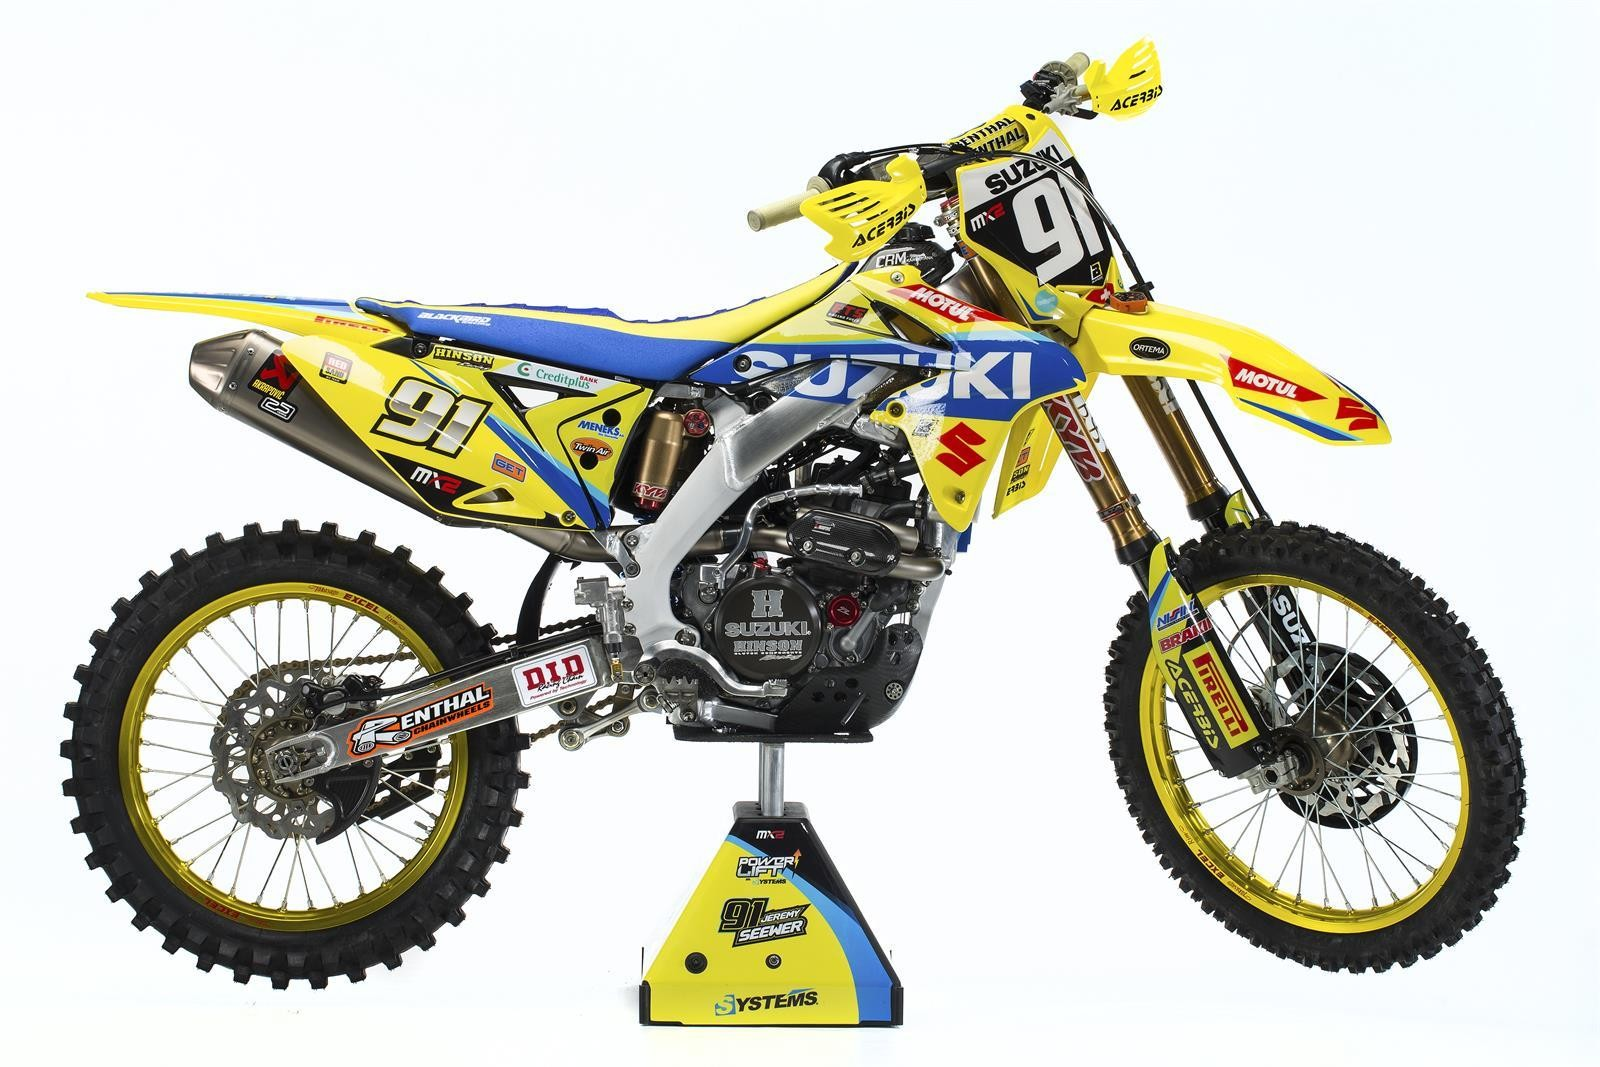 Jeremy Seewer's 2017 Suzuki World MX2 RM-Z250 - First Look: 2017 Suzuki World MX2 Team - Motocross Pictures - Vital MX